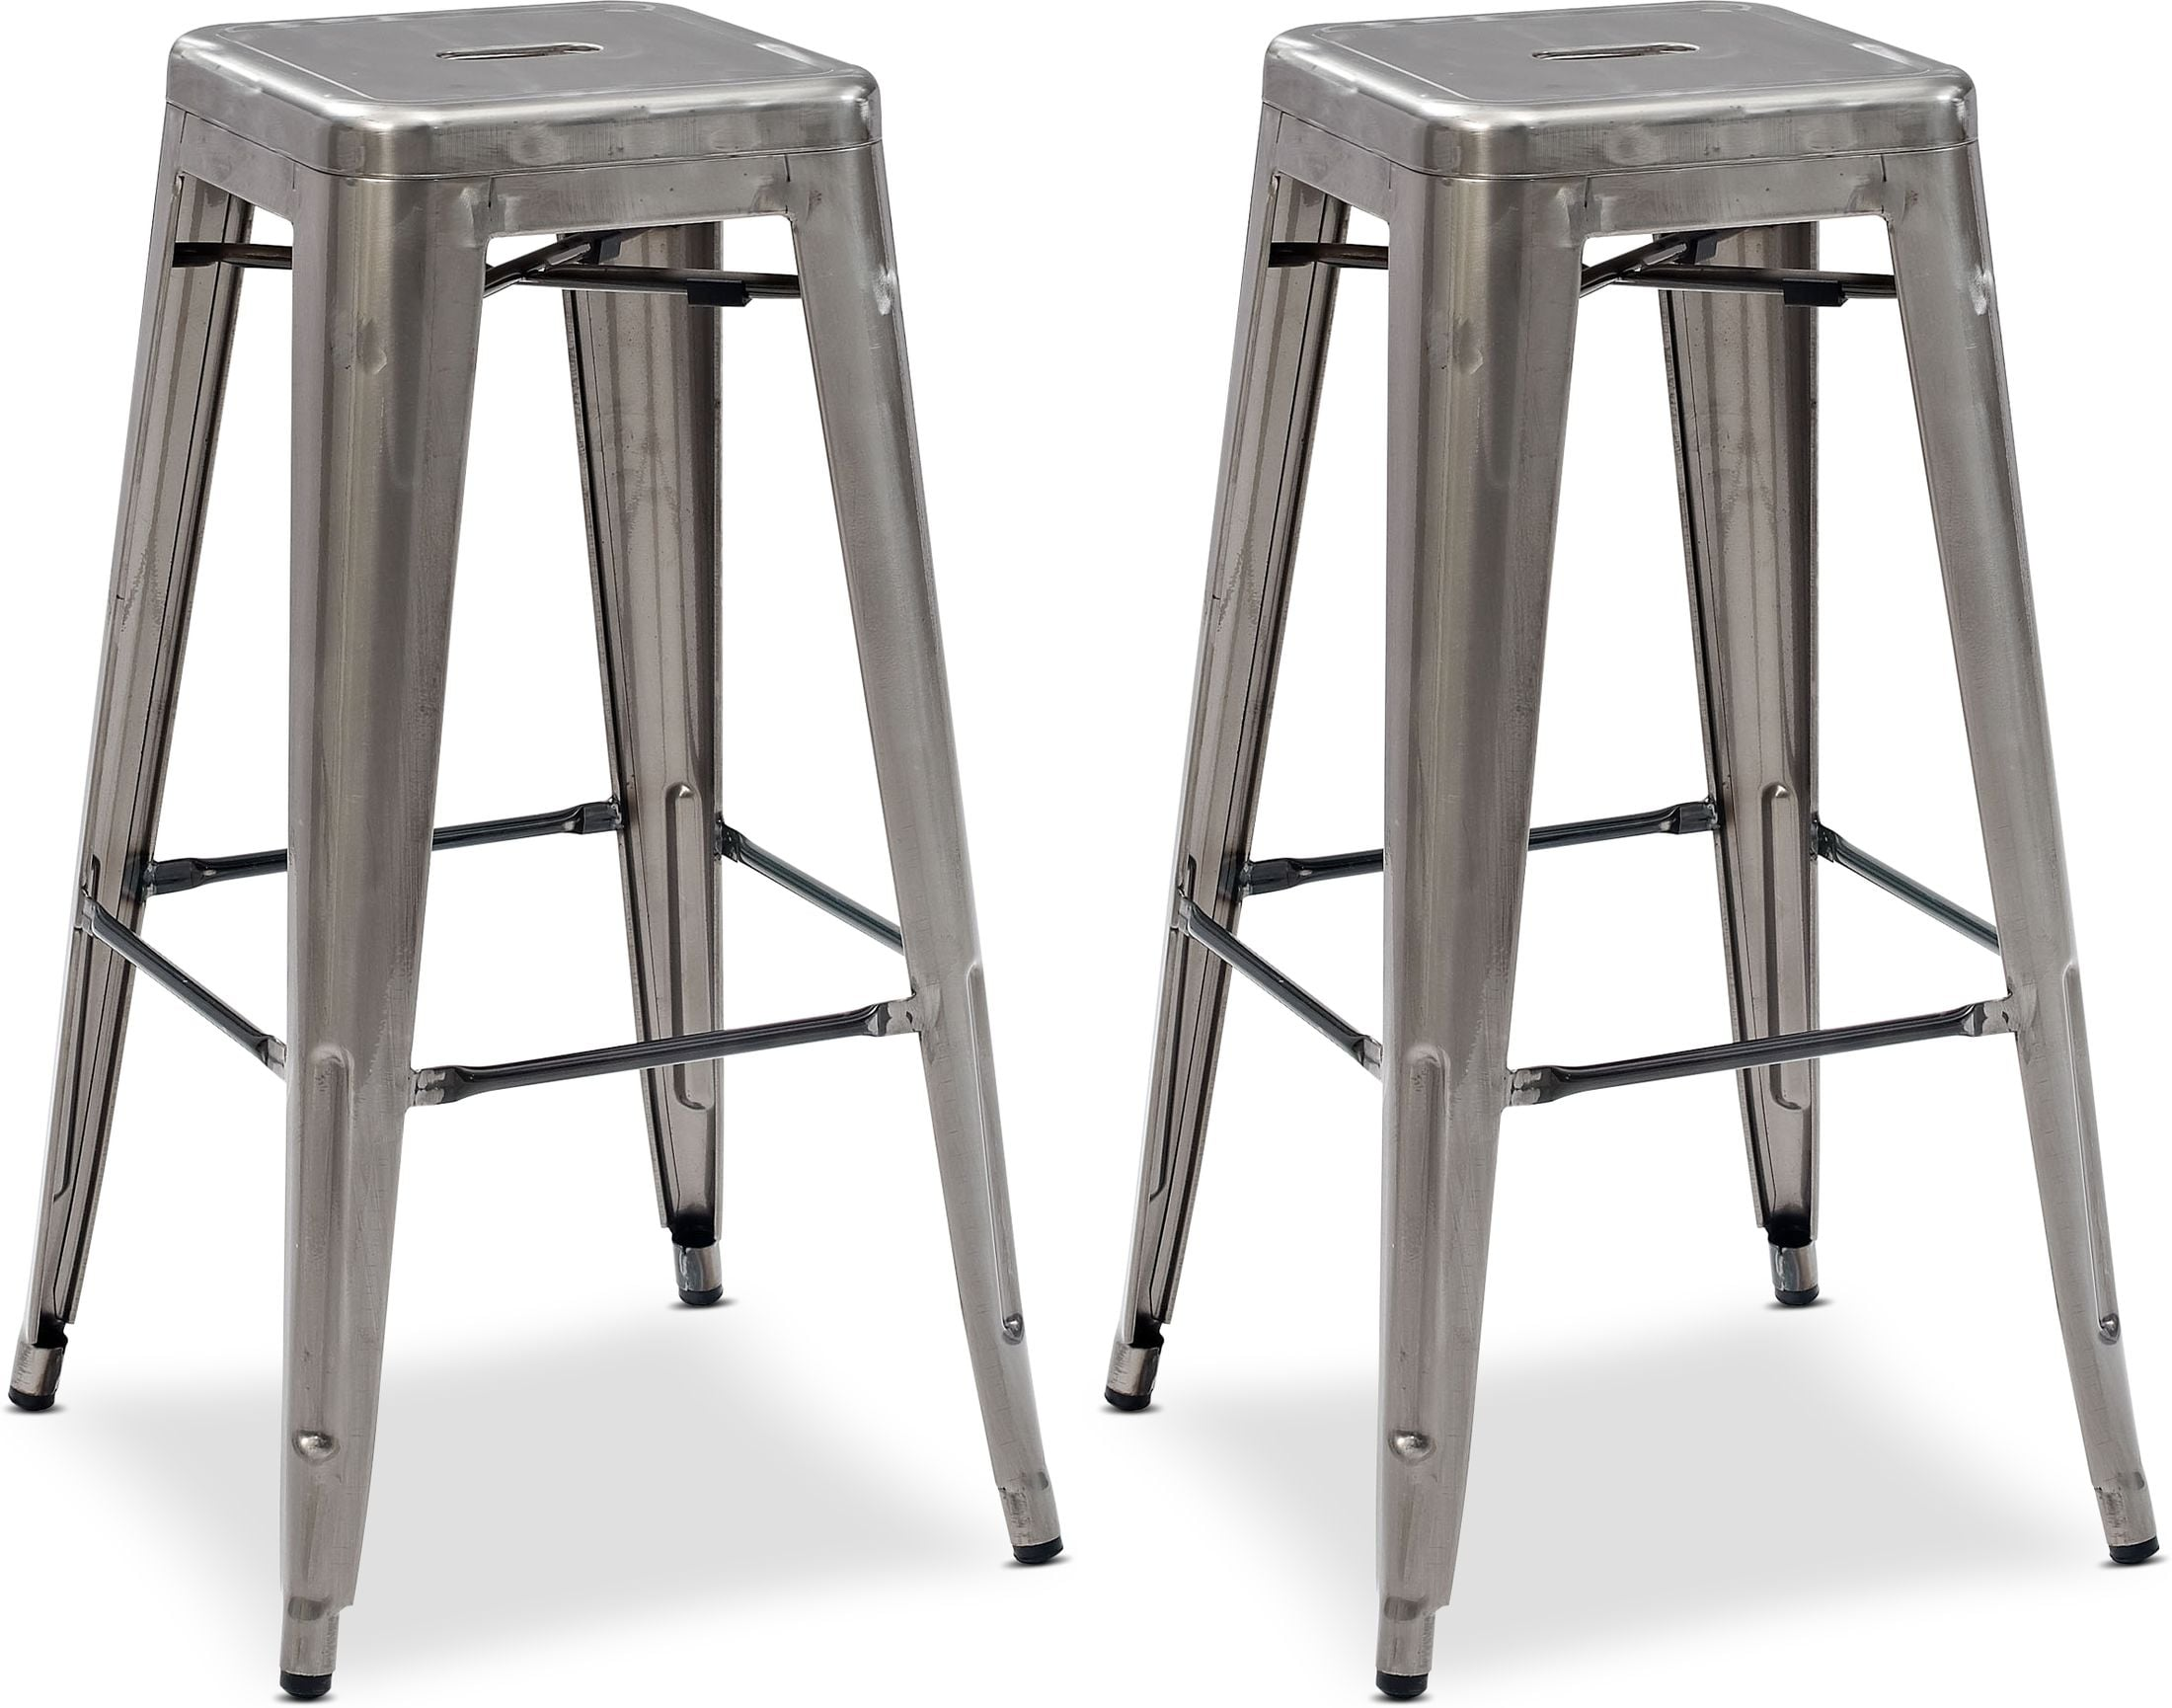 Dining Room Furniture - Oliver Set of 2 Bar Stools